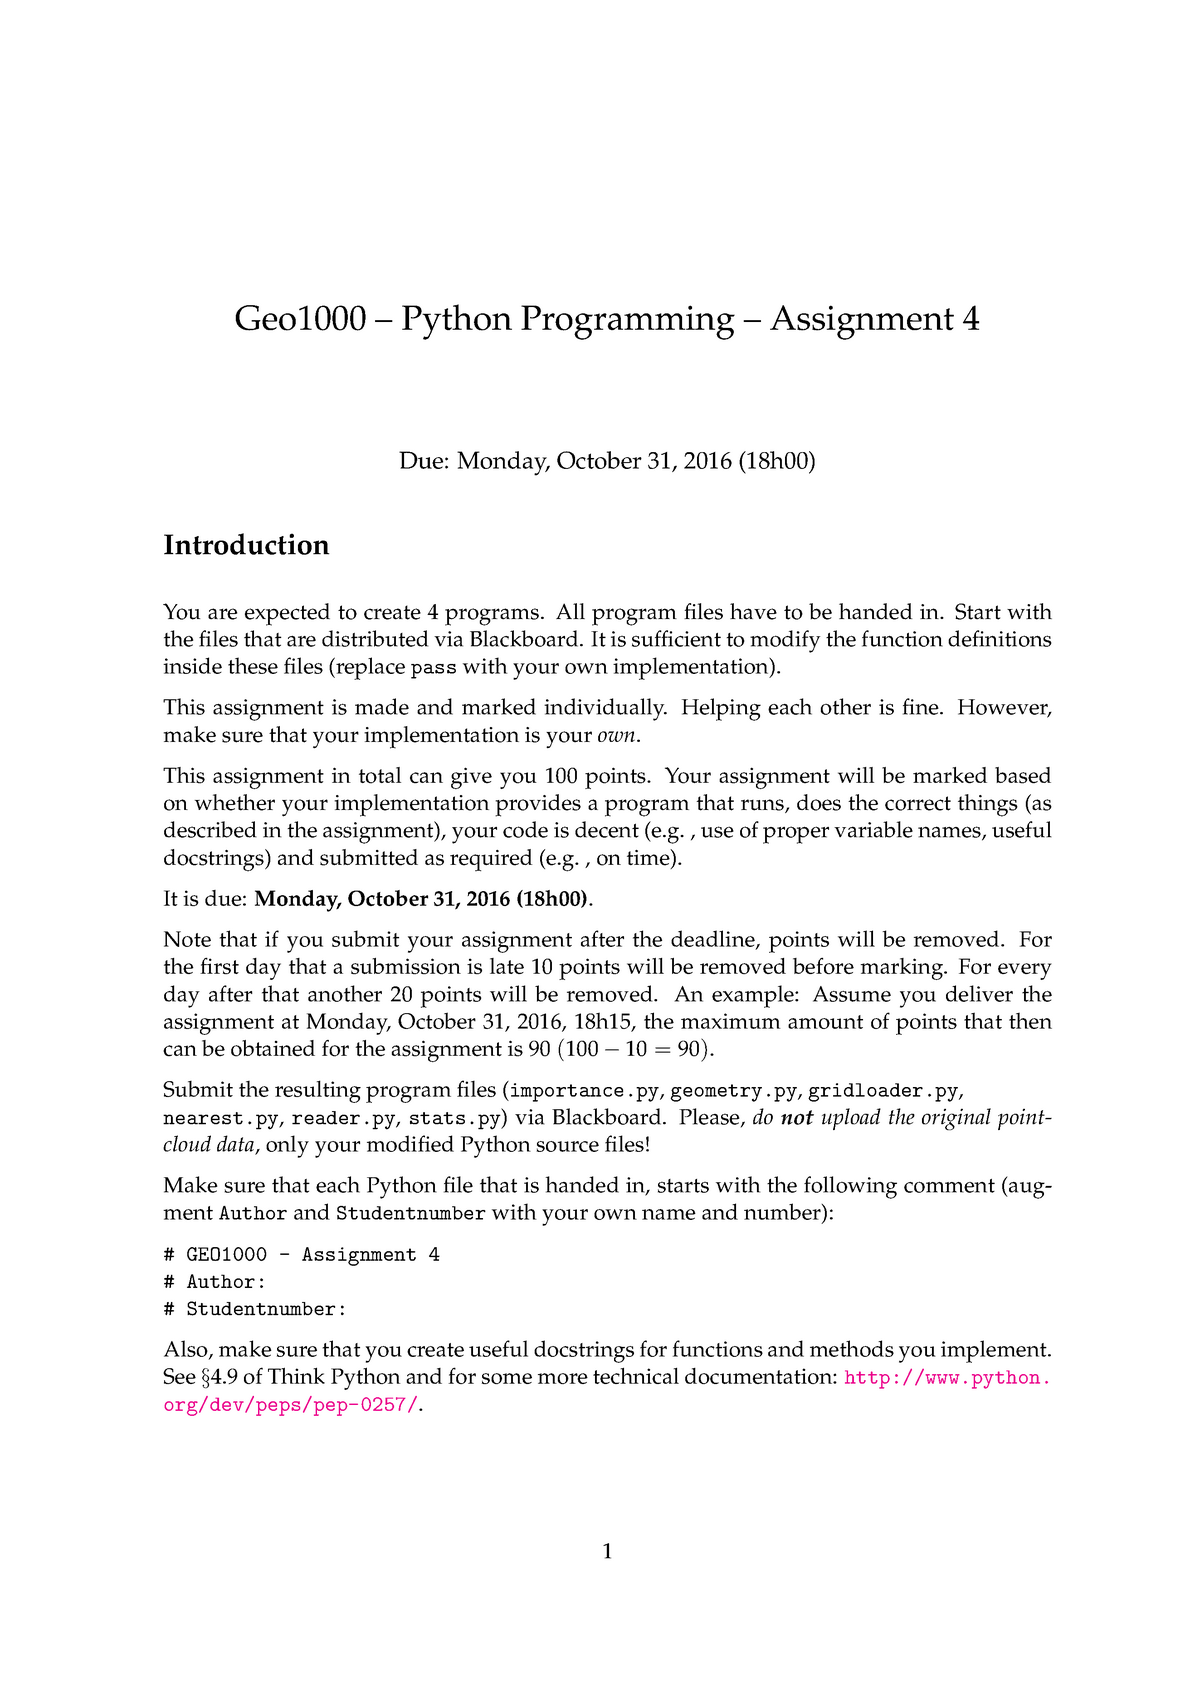 Assignment 4 - GEO1000: Python Programming for Geomatics